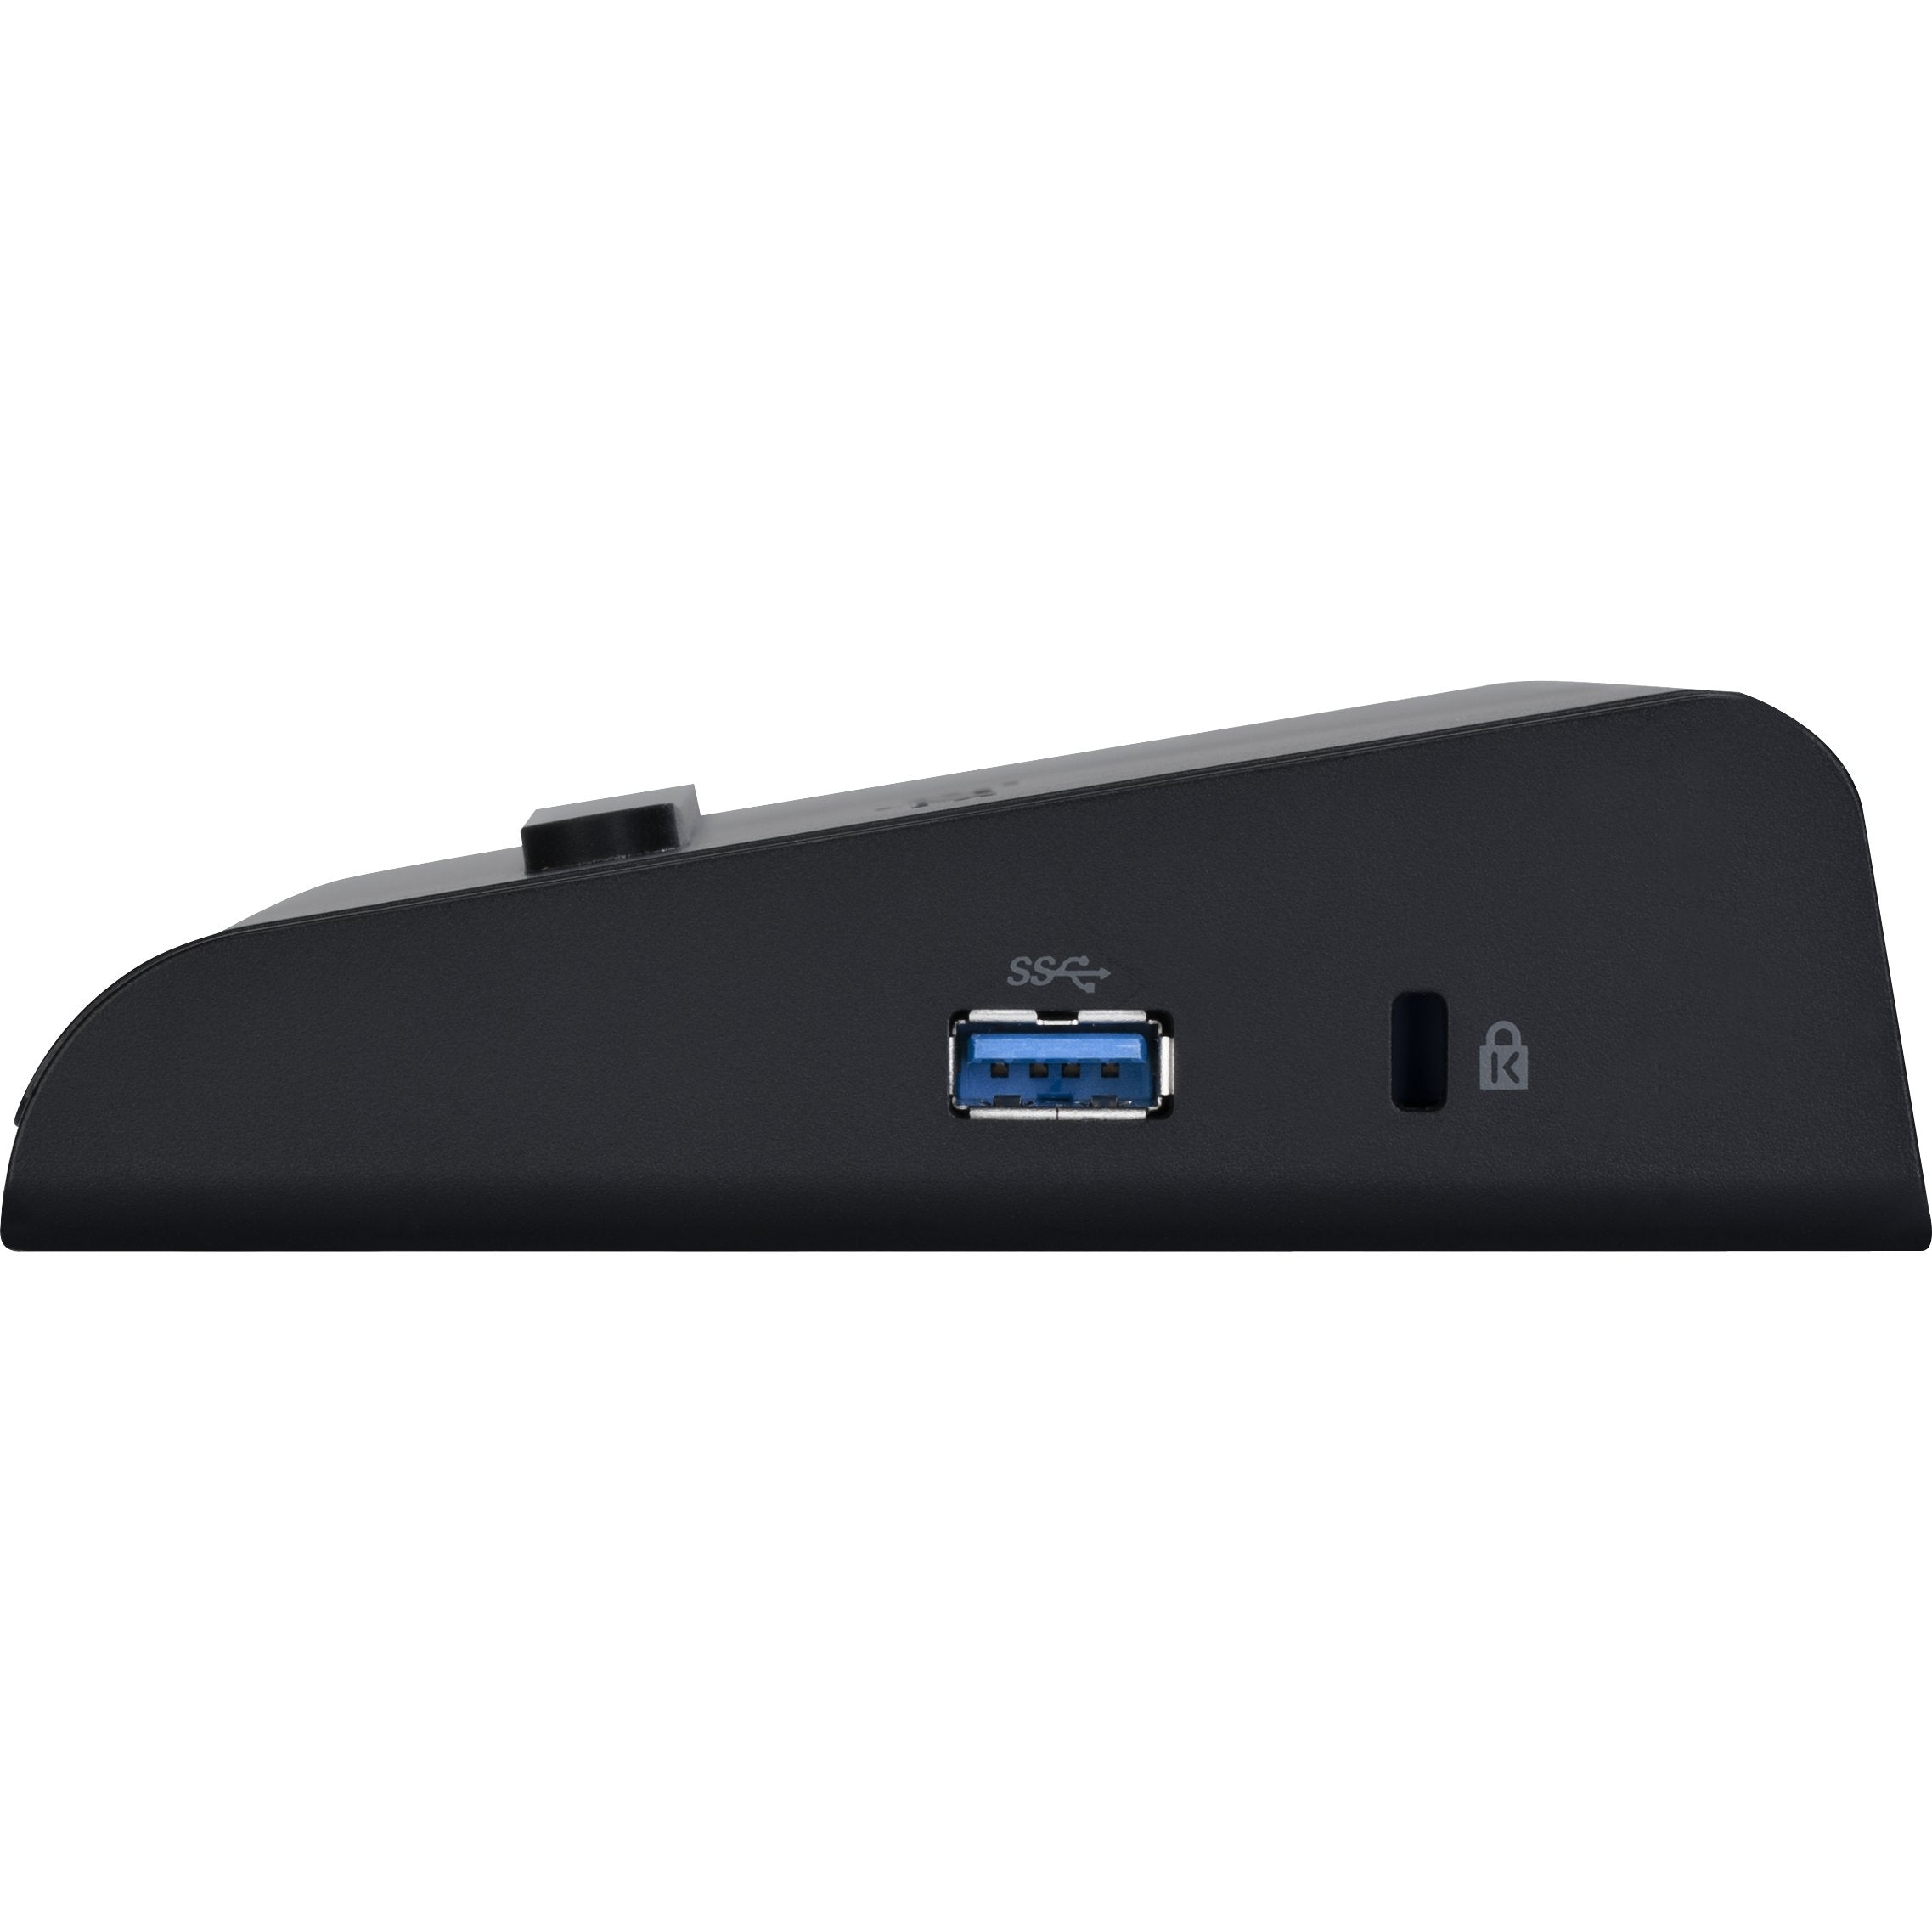 Universal USB 3 0 DV Docking Station with Power